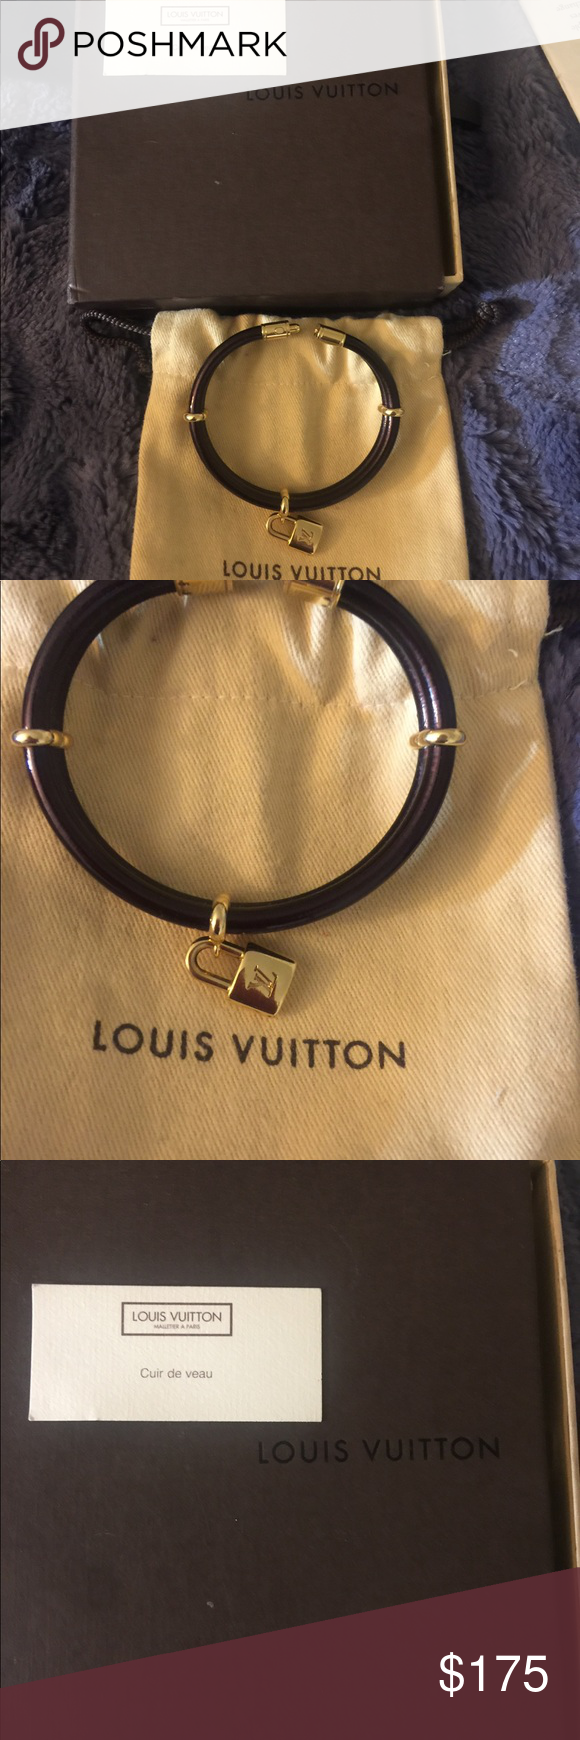 Lv bracelet louis vuitton jewelry jewelry bracelets and louis vuitton